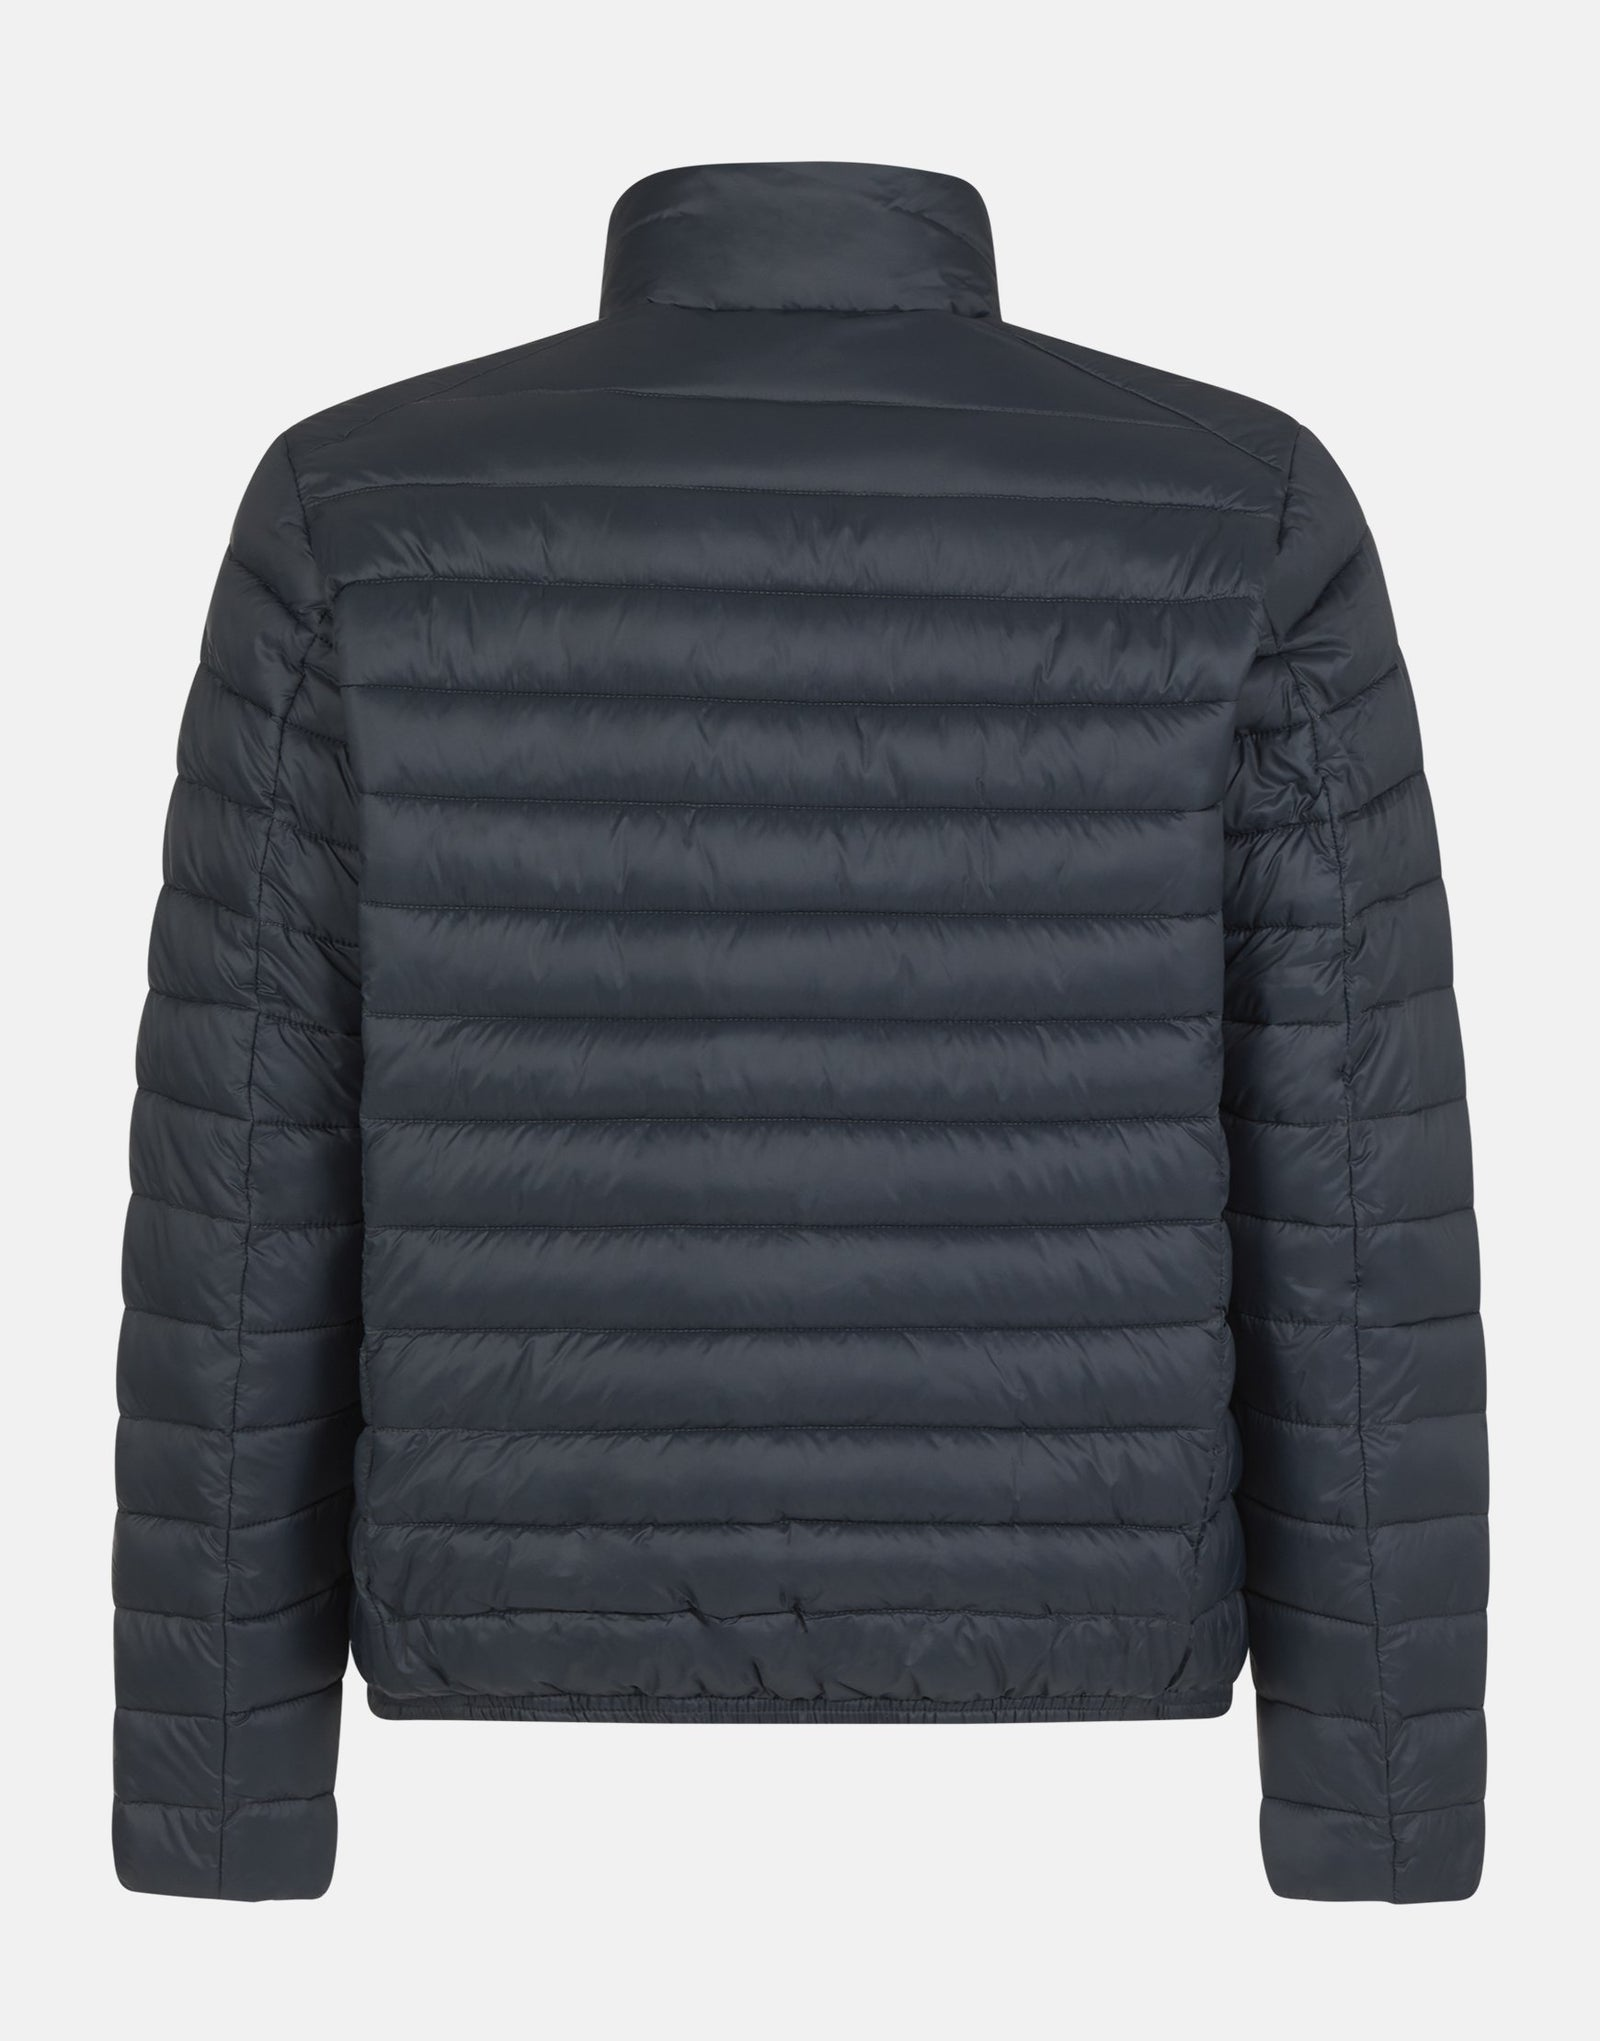 Save The Duck Men's Giga Jacket in Black - Luxe EQ